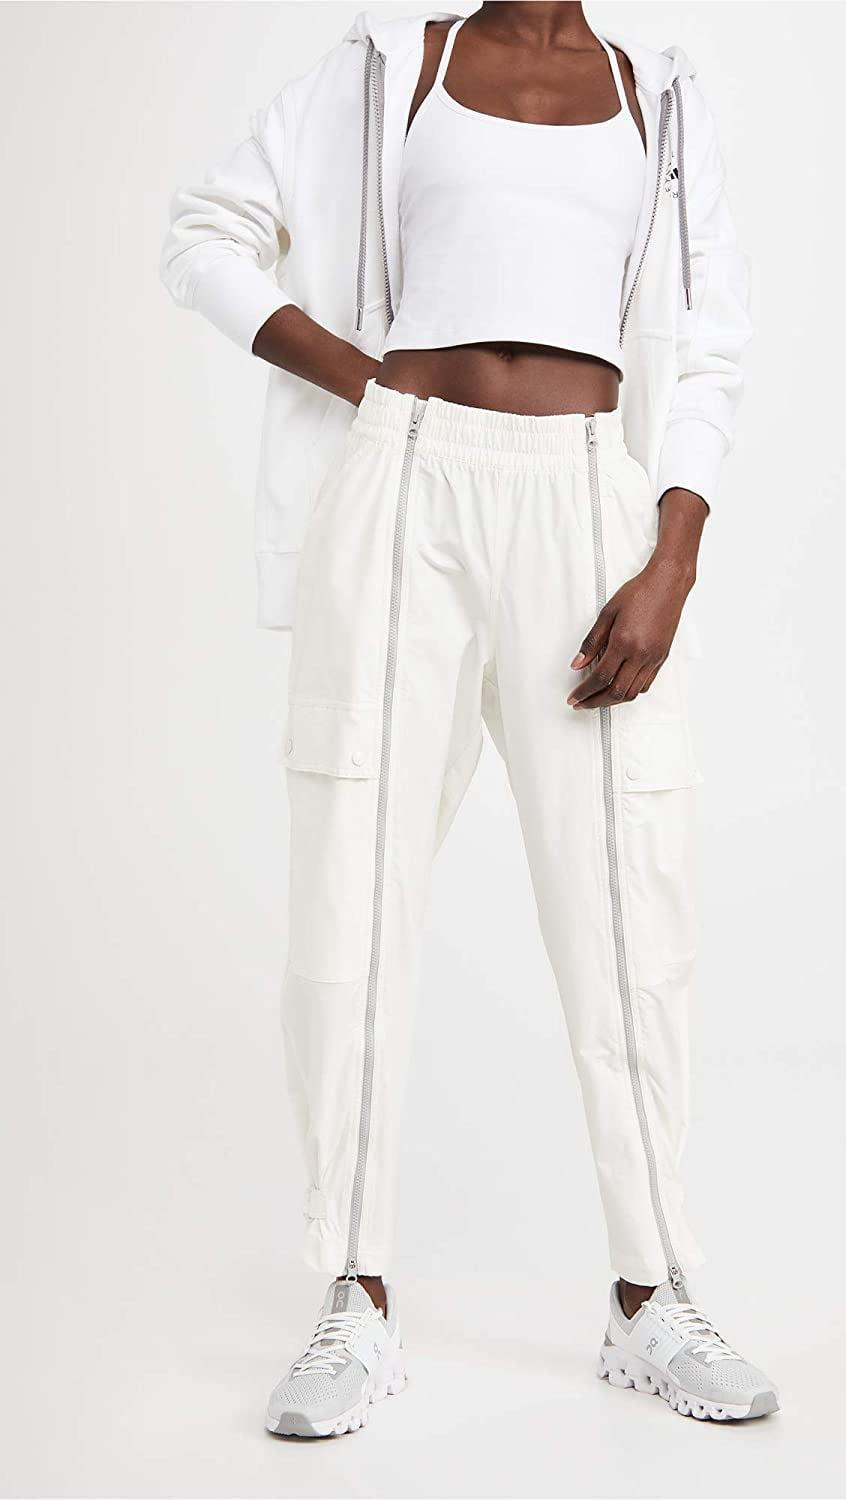 <p>These <span>adidas by Stella McCartney Perf White Sweatpants</span> ($160) are so cool.</p>